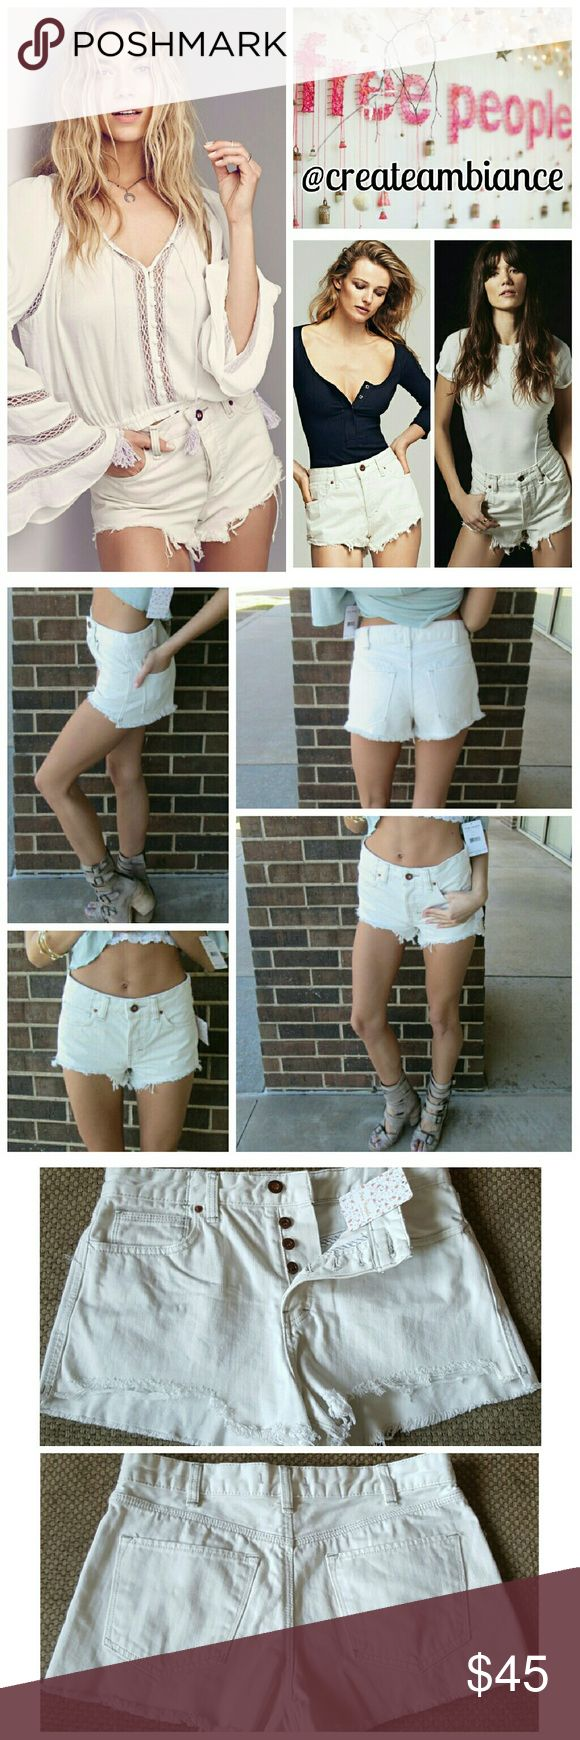 Free People High Rise Cutoff Jean Shorts Free People High Rise Cutoff Jean Shorts in optic white.  No trade, discount with bundle! Considering all reasonable offers made via the blue offer button only! Free People Shorts Jean Shorts